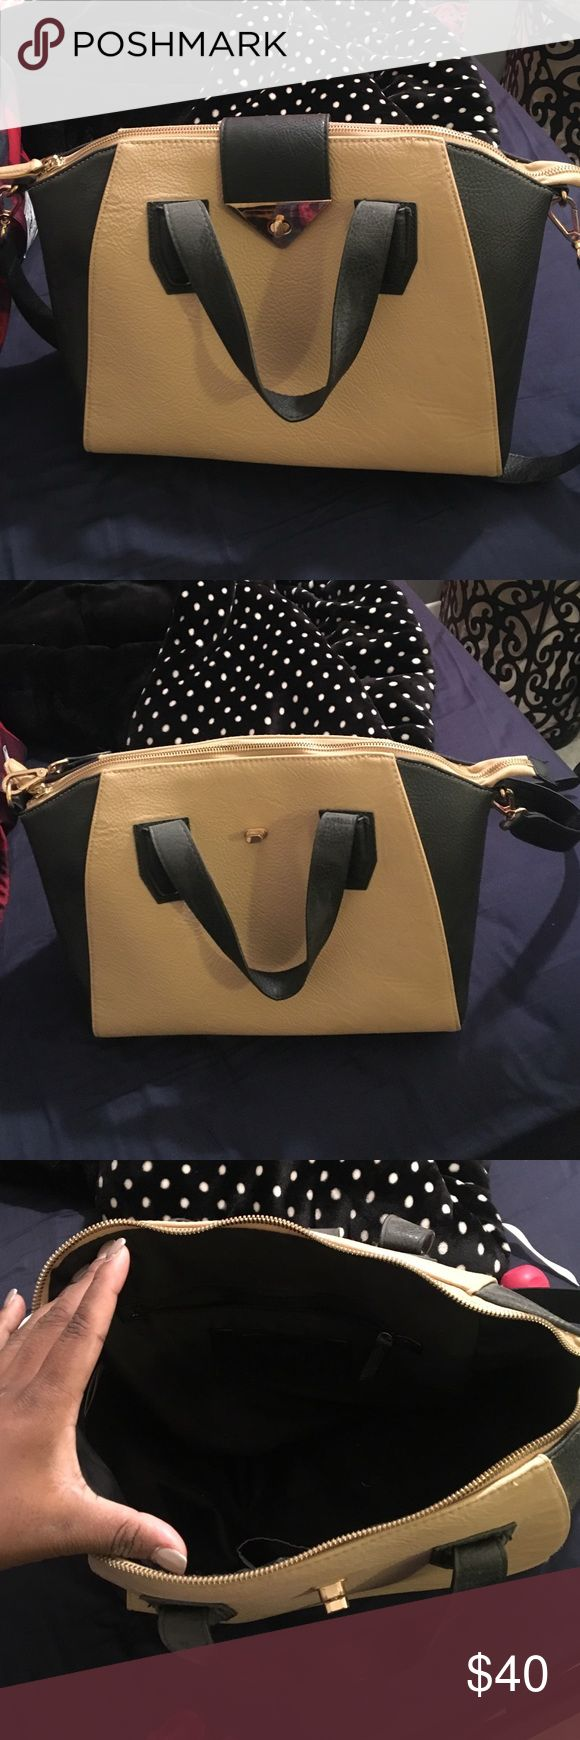 Purse Huge beige and black TopShop tote style purse. Can fit endless amounts of items inside. Has a zip pocket and phone compartment inside, with black lining. Very clean and looks brand new, except for a few minor scratches on the front claspe Topshop Bags Totes